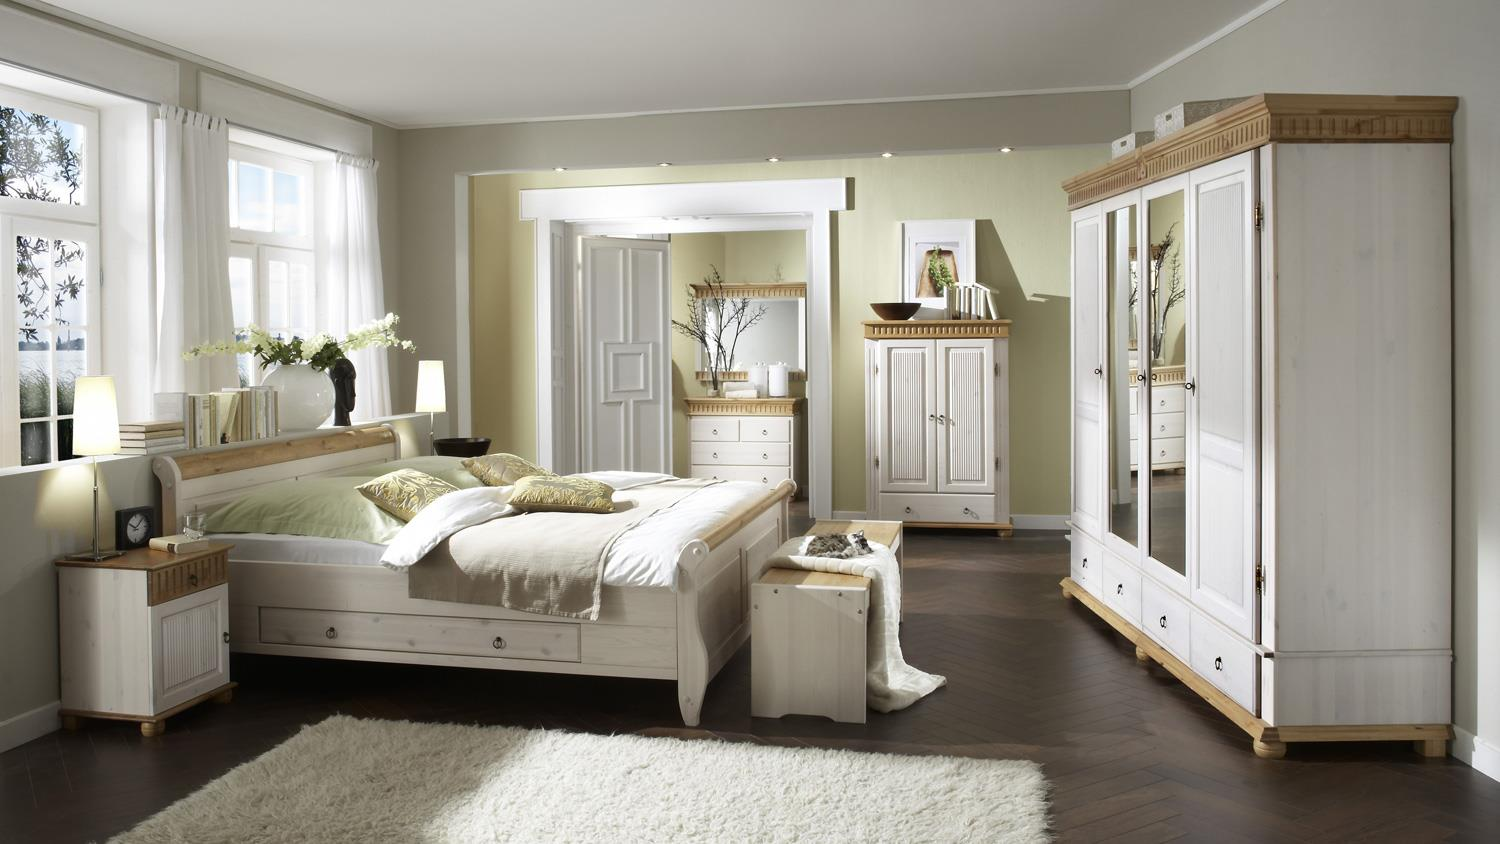 bett malta kiefer massiv wei antik 200x200 mit schubkasten. Black Bedroom Furniture Sets. Home Design Ideas